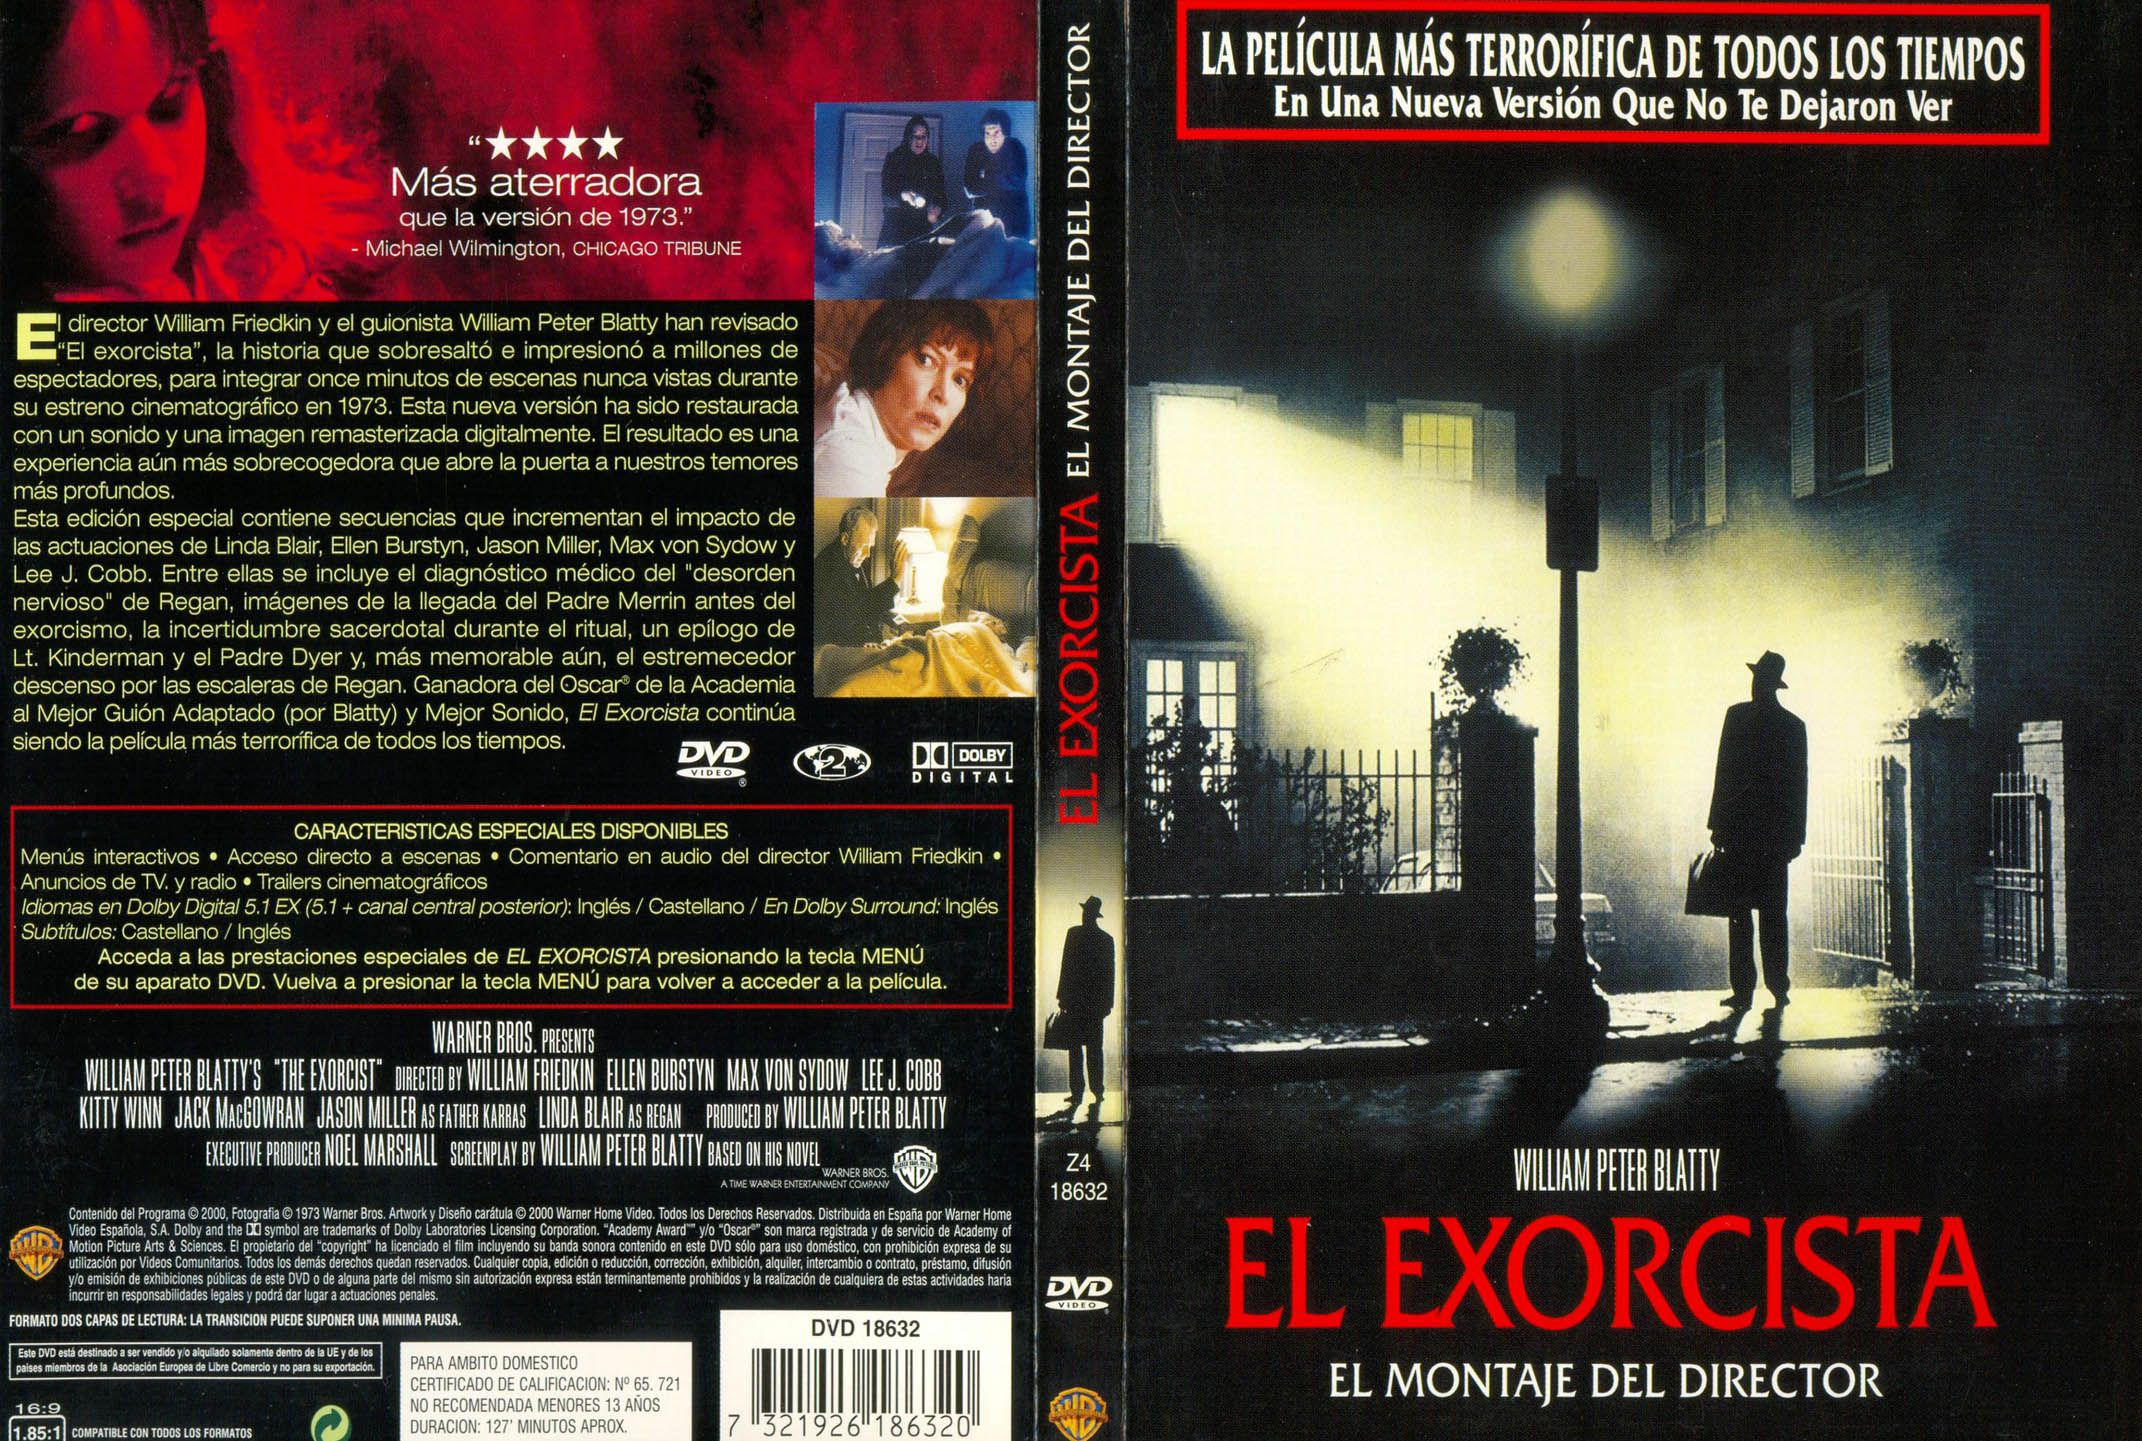 El Exorcista Libro Oculto Dvd Cover Spanish Film Miifotos